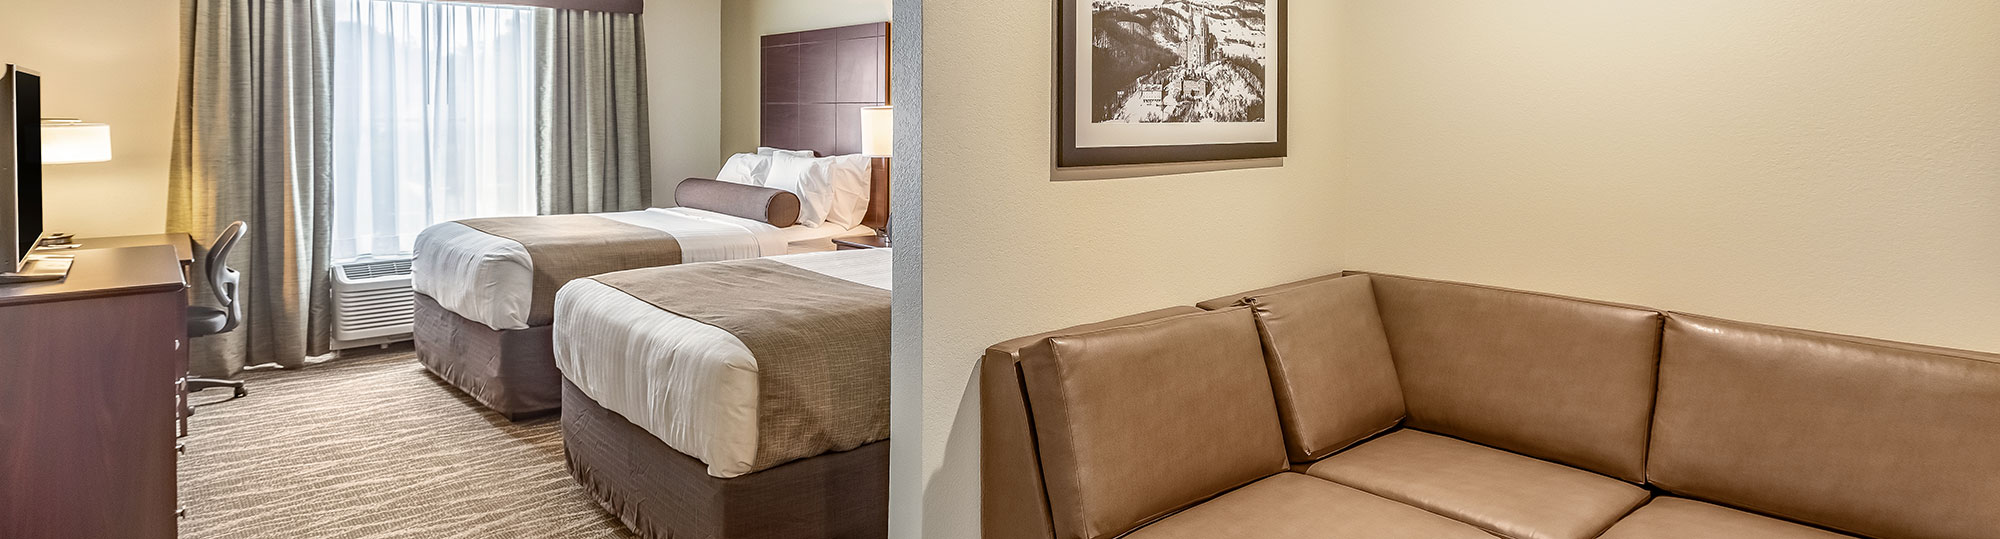 Cobblestone Hotel and Suites Neenah